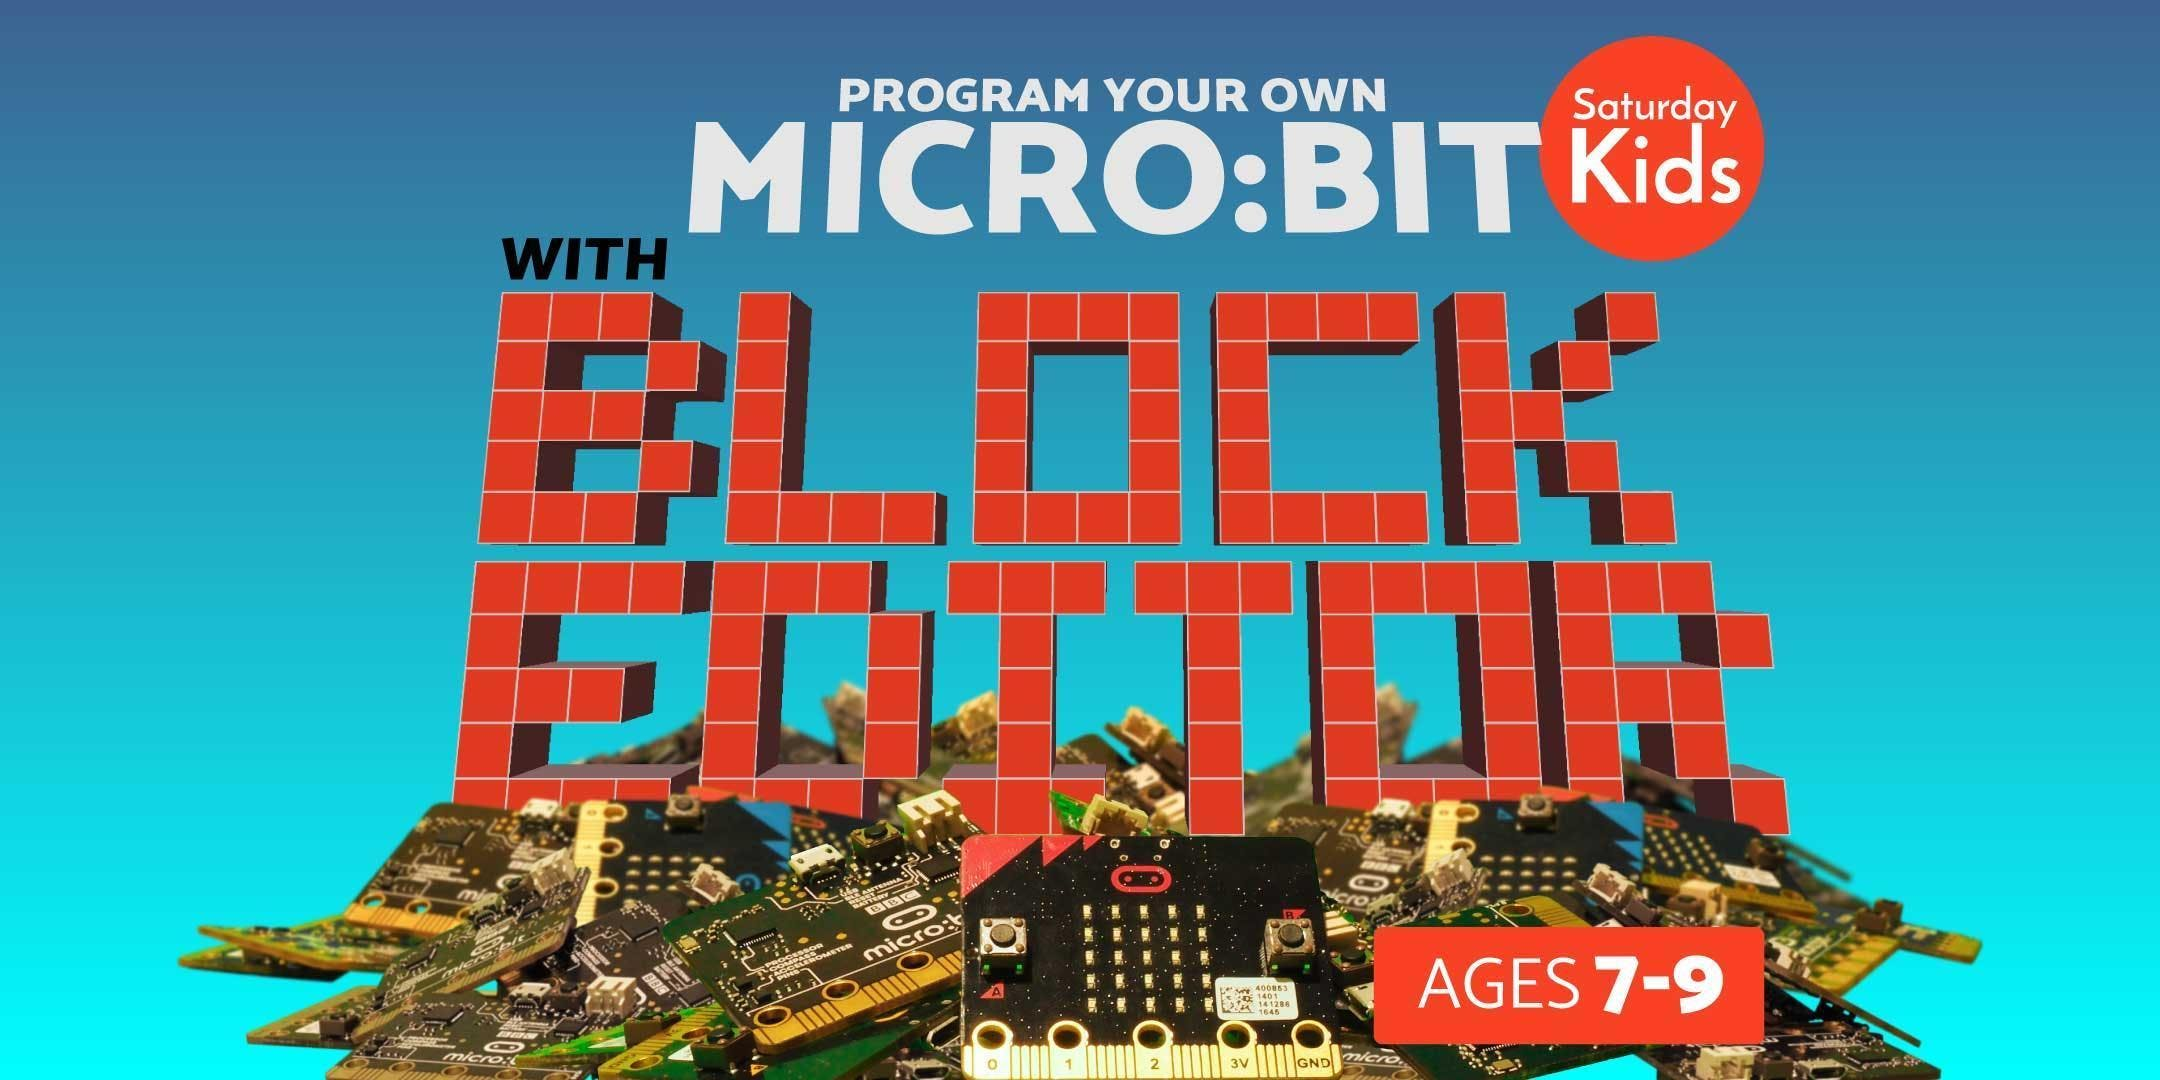 Code & Invent with Microbit Block Editor [Ages 7-9] 4 Jul - 29 Aug (Wed 430PM)  Thomson